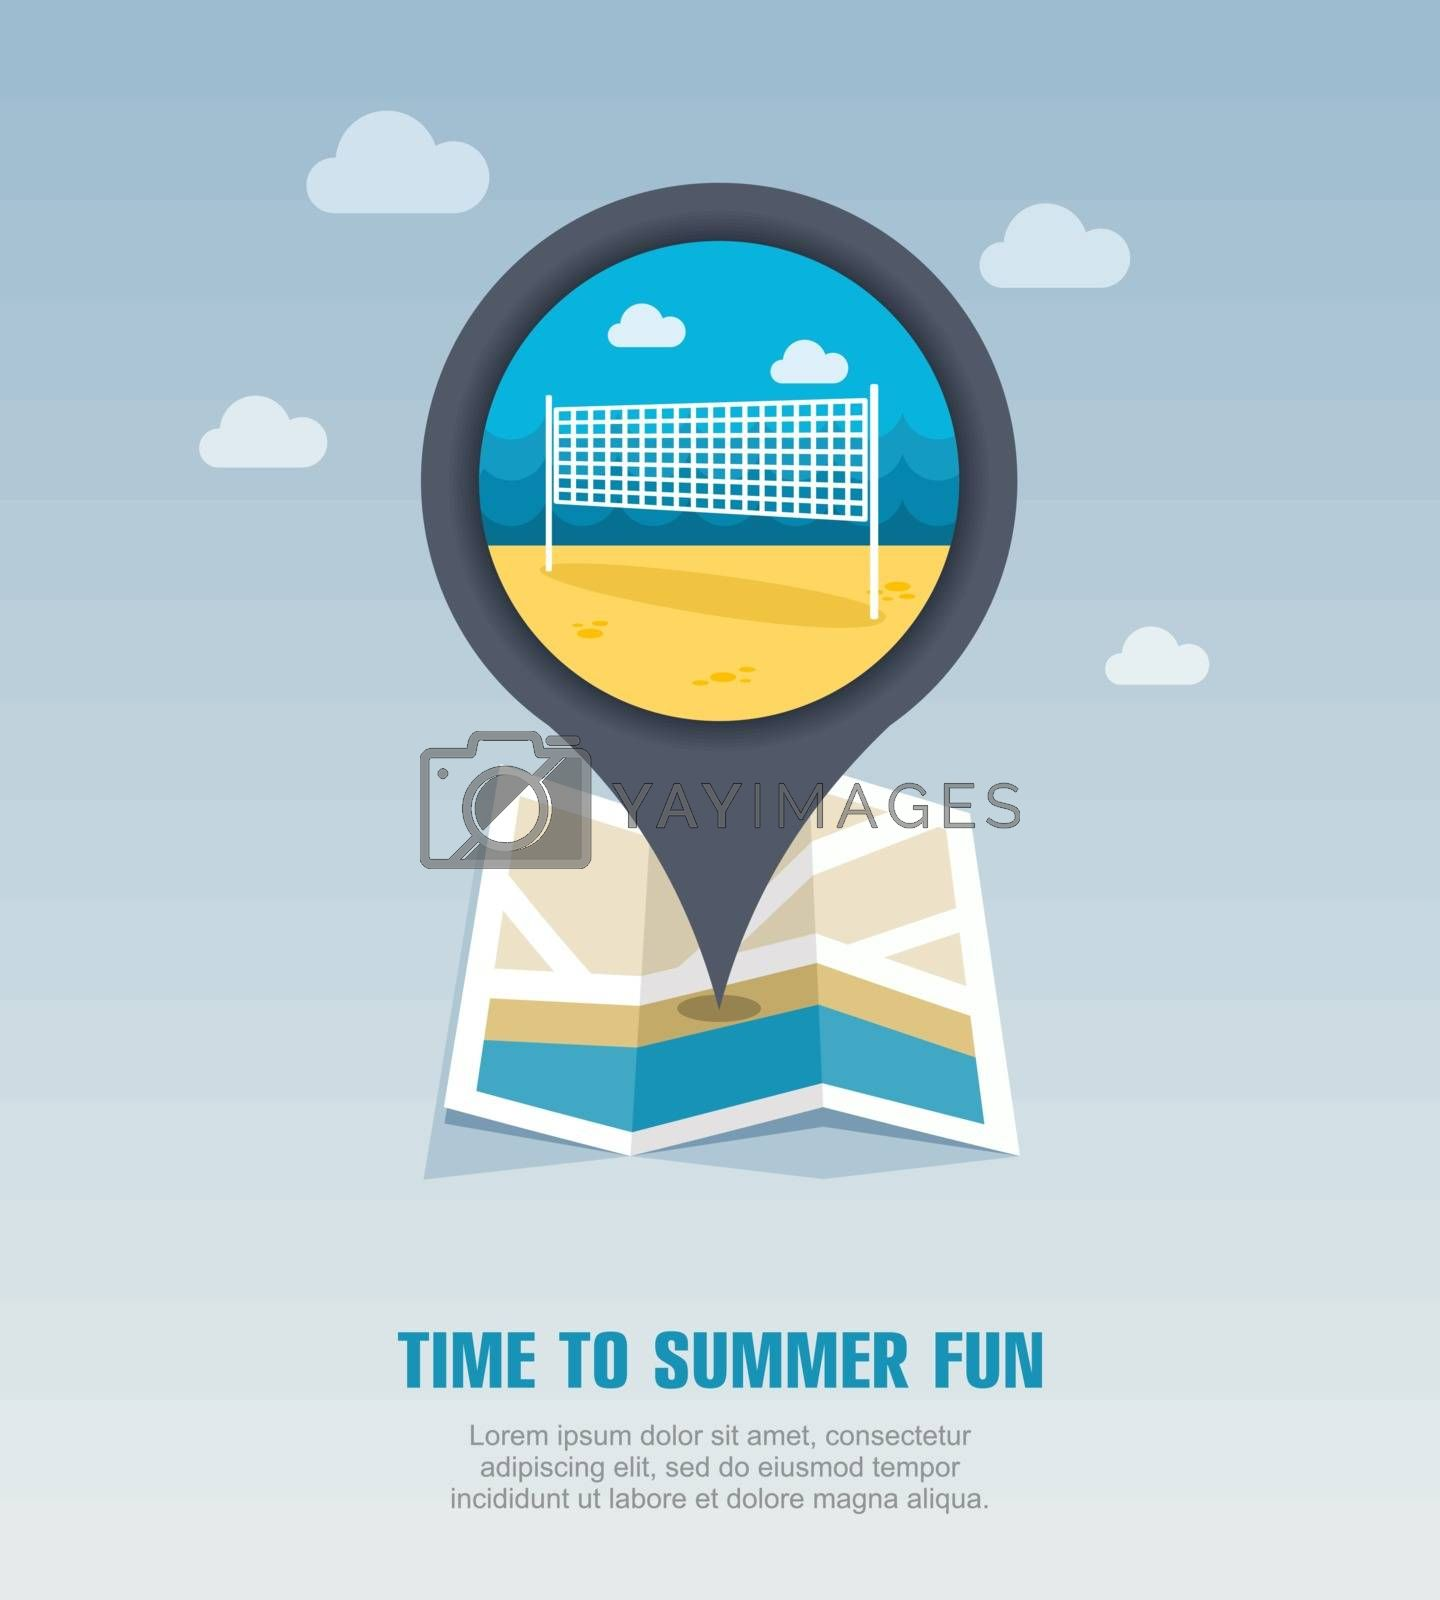 Volleyball net beach sport pin map icon. Vacation by nosik